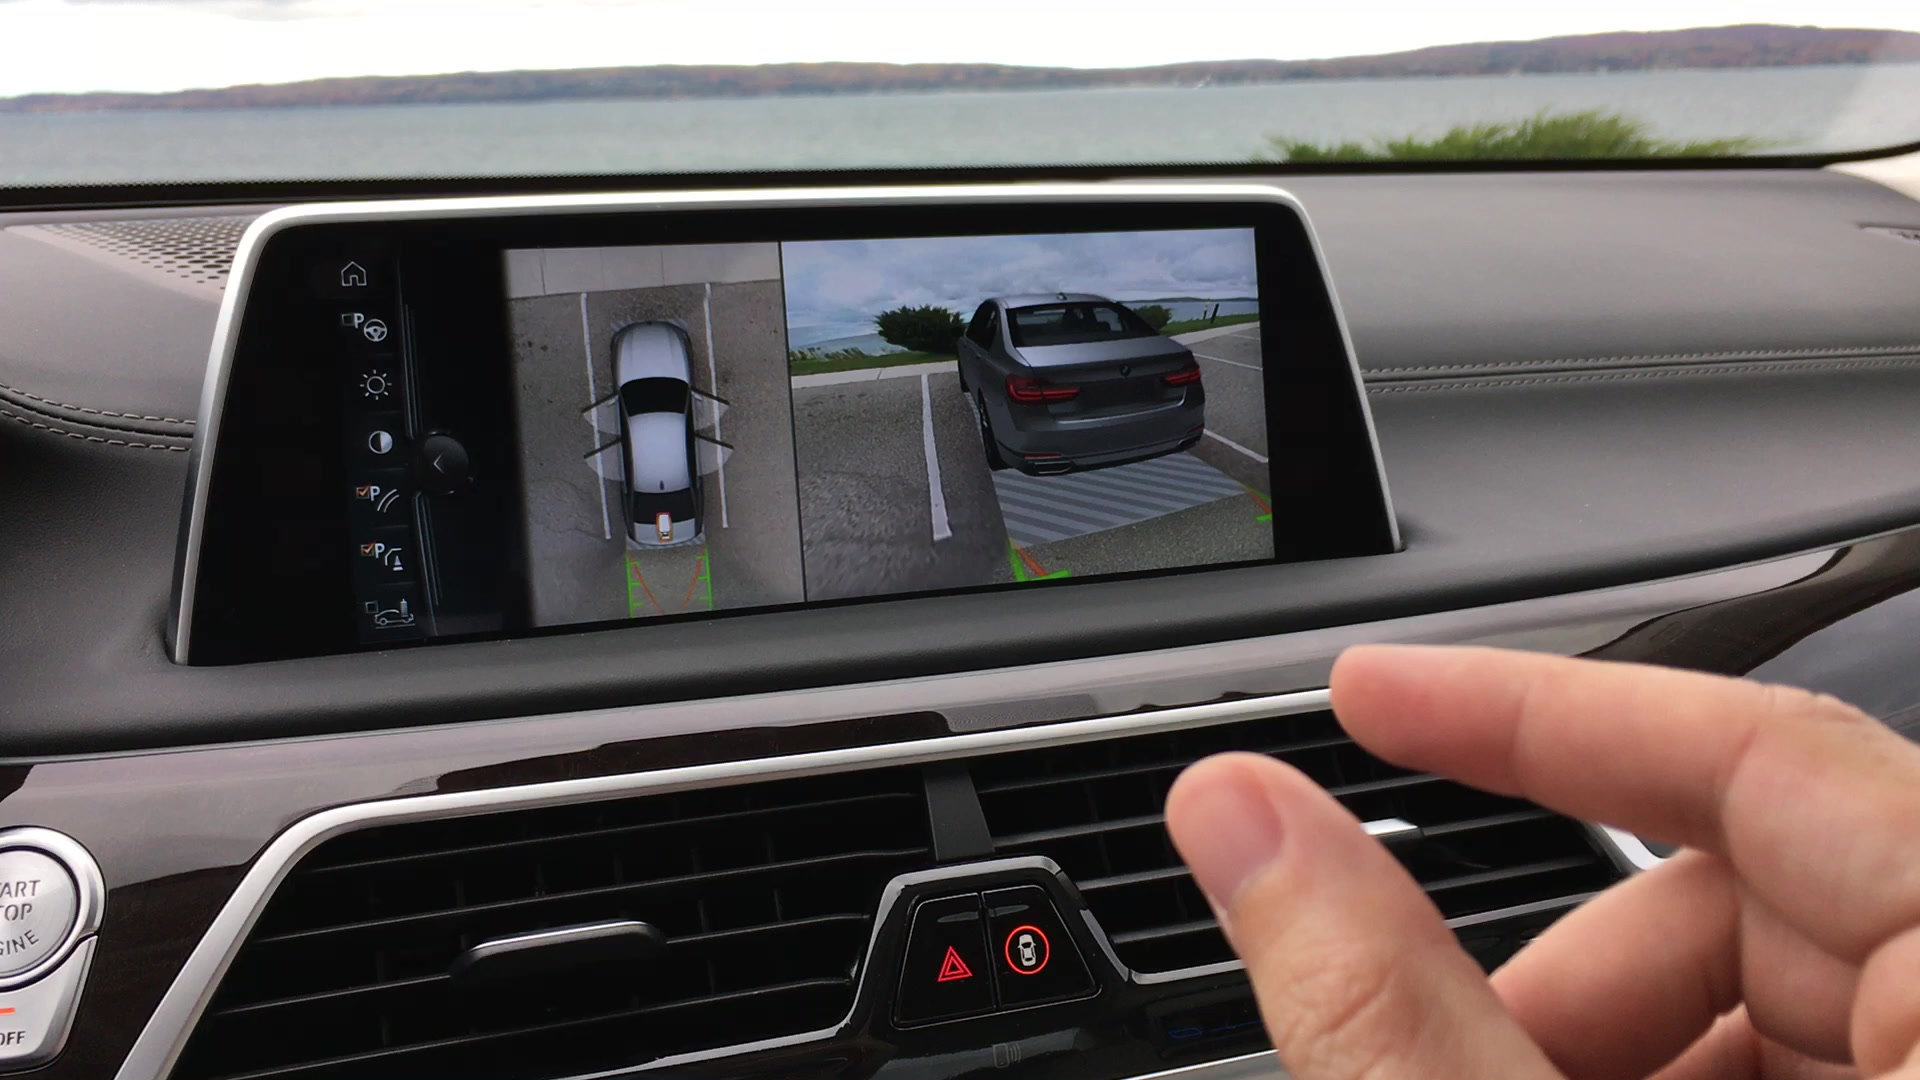 2016 BMW 7 Series Surround View Gesture Control | Autoblog Short Cuts